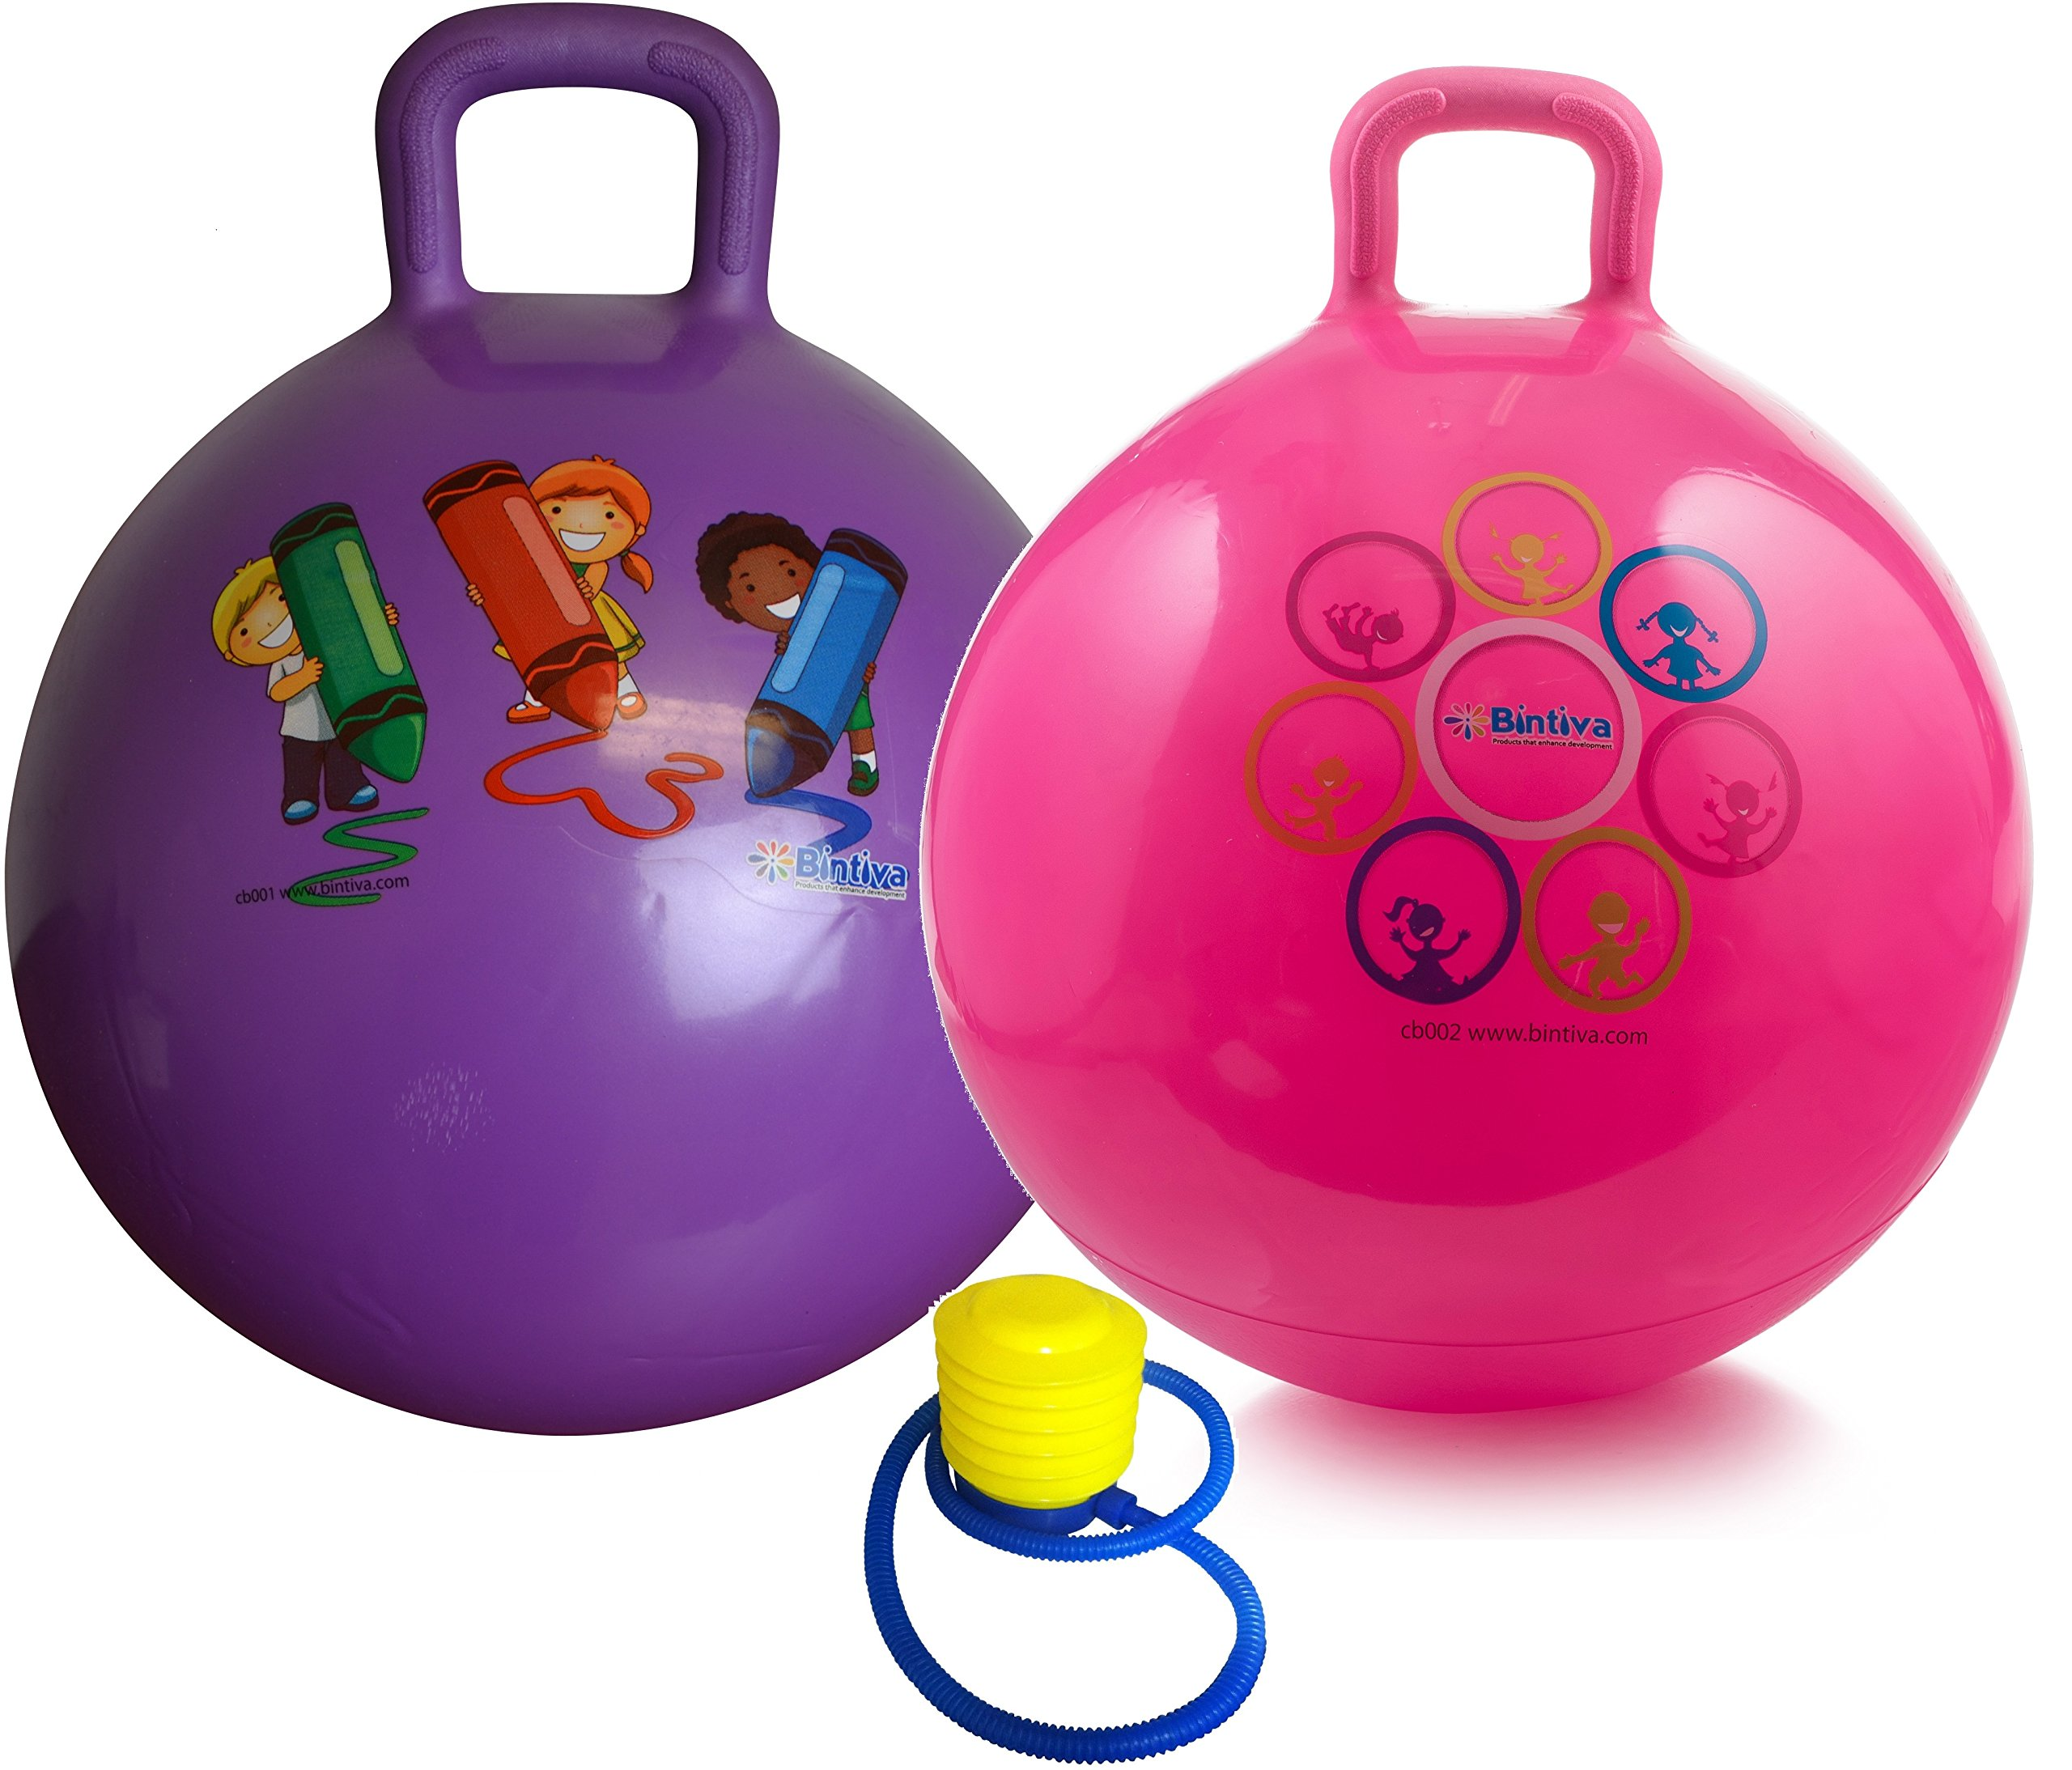 Hippity Hop 45 cm / 18 Inch Diameter Including Free Foot Pump, for Children Ages 3-6 Space Hopper, Hop Ball Bouncing Toy - 2 Balls by bintiva (Image #1)